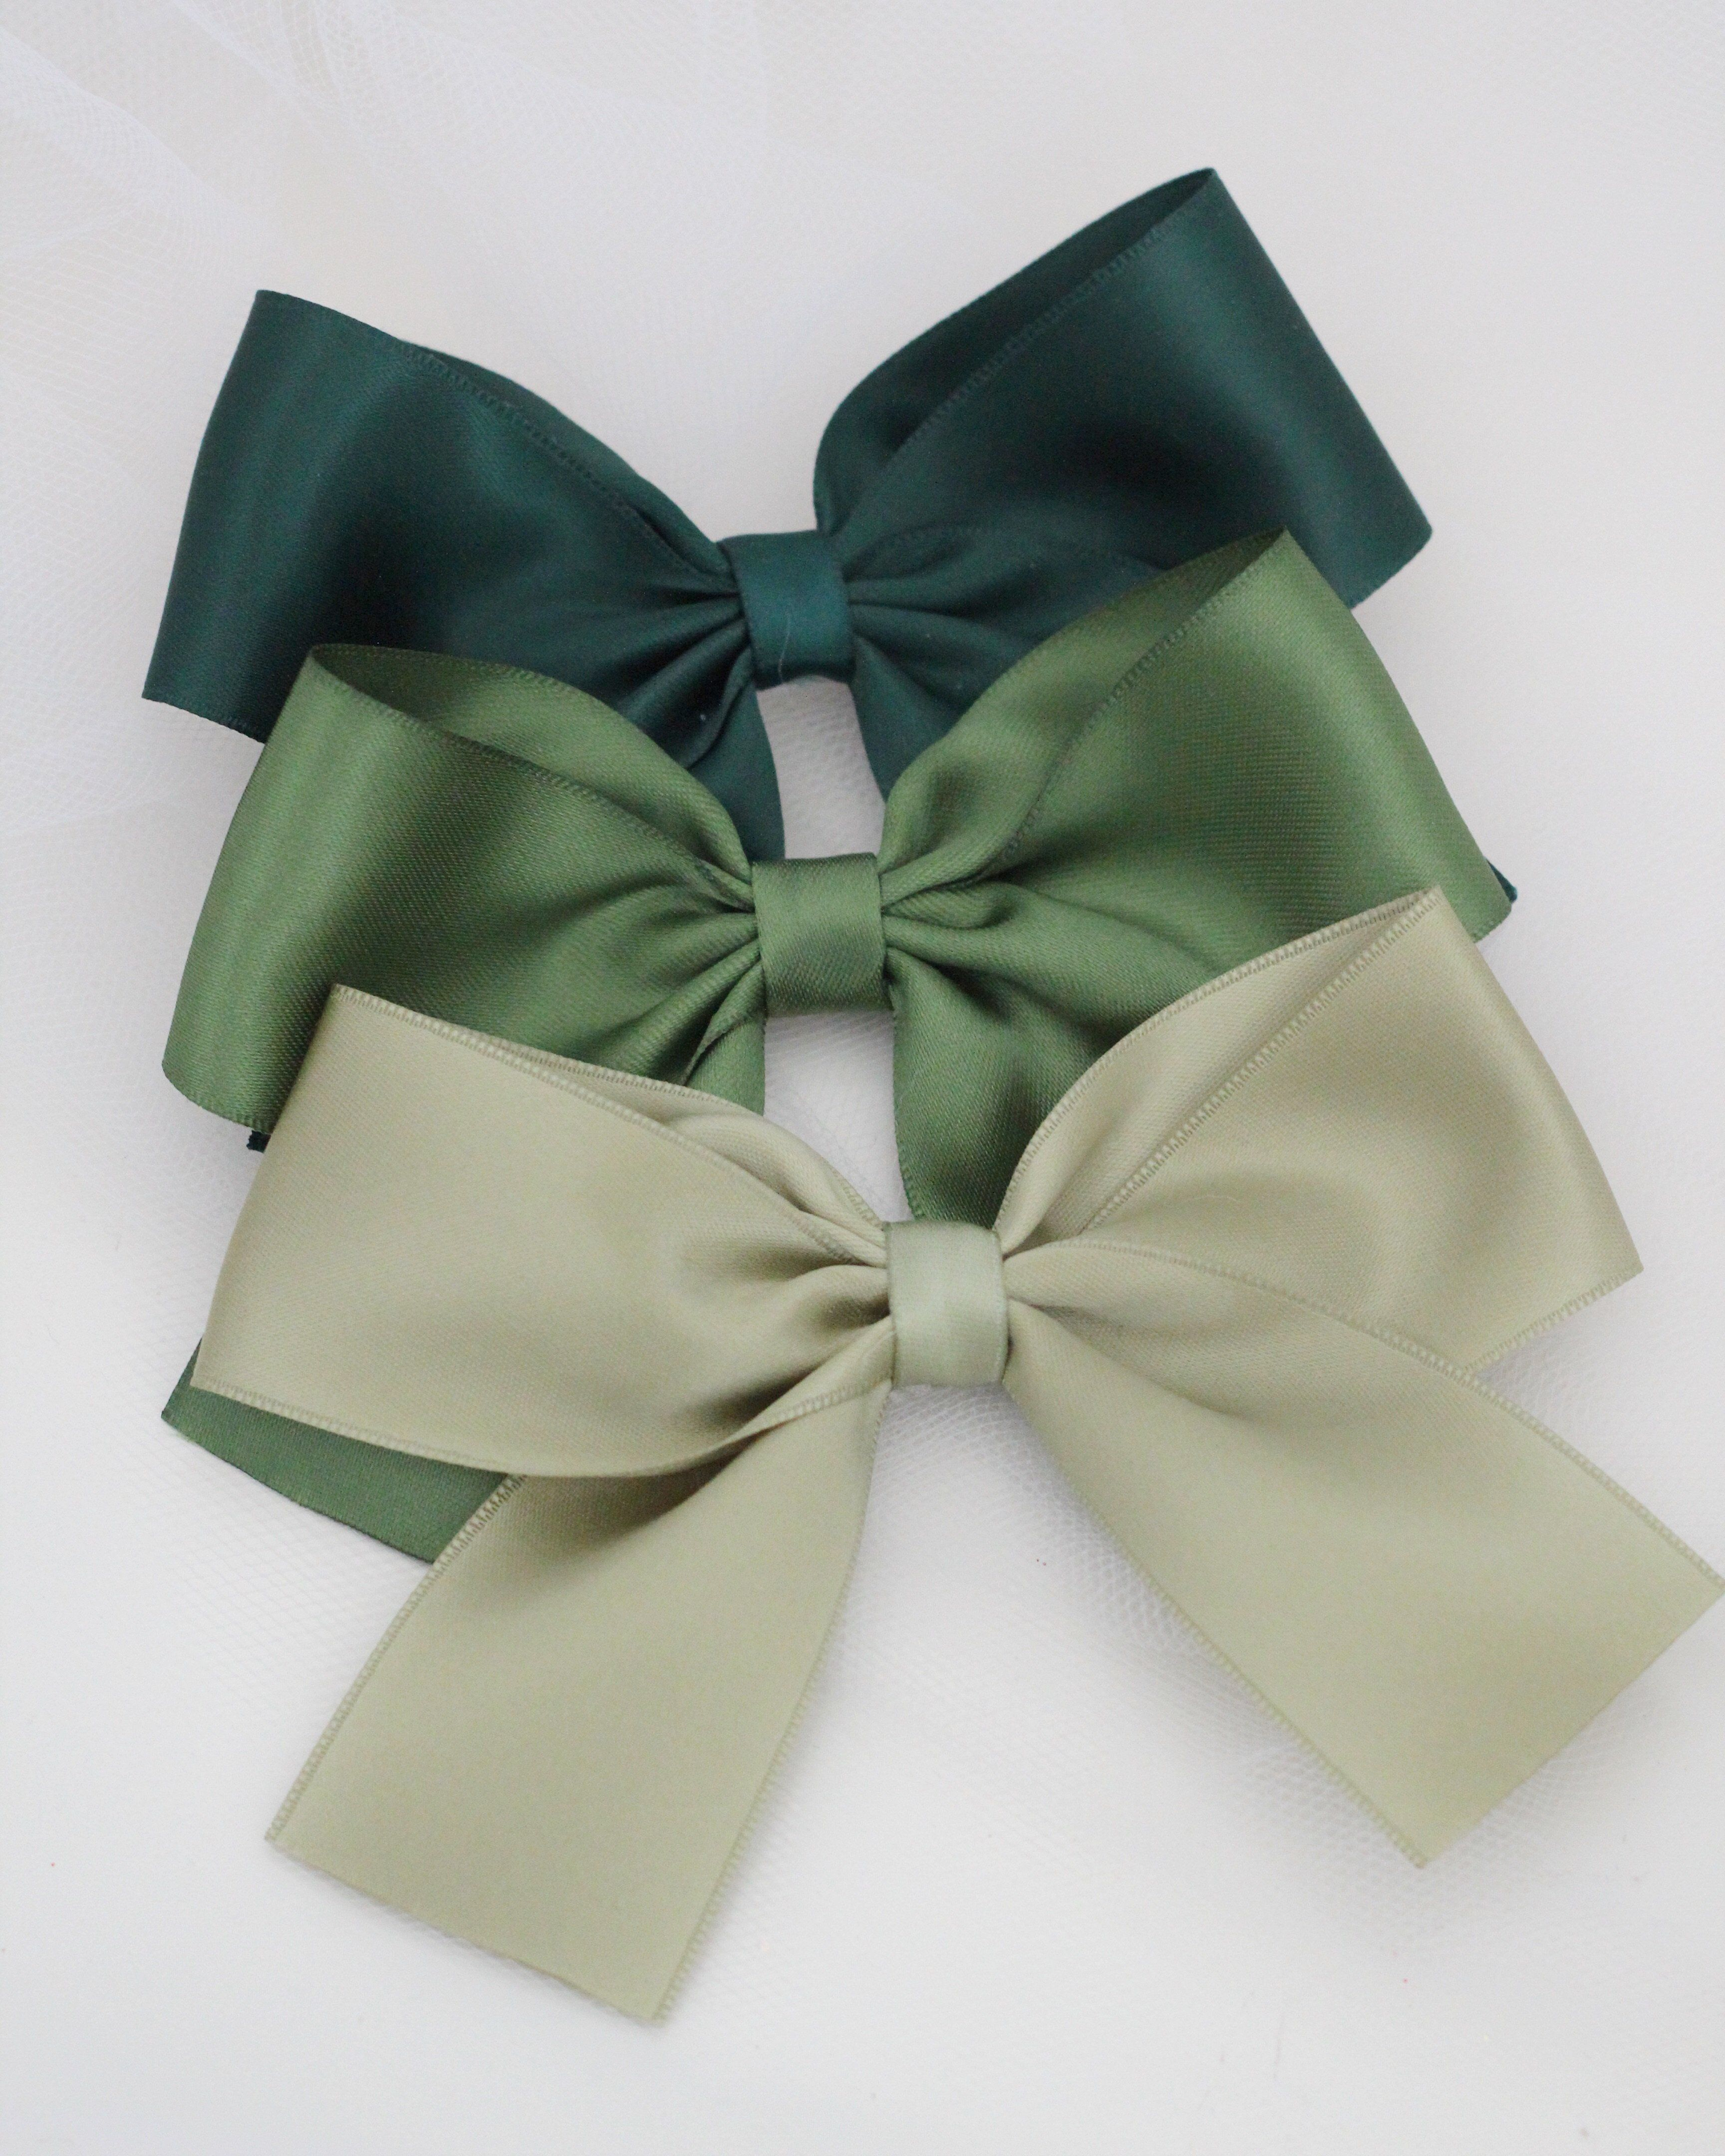 Satin bows to match the bows on our popular glitter shoes collection or to wear alone for more girly look. You can purchase these bows as a SINGLE hair clips. DETAIL: Measurement: SMALL: 4.25 INCHES / LARGE: 4.75 INCHES Clip: alligator clip Handmade